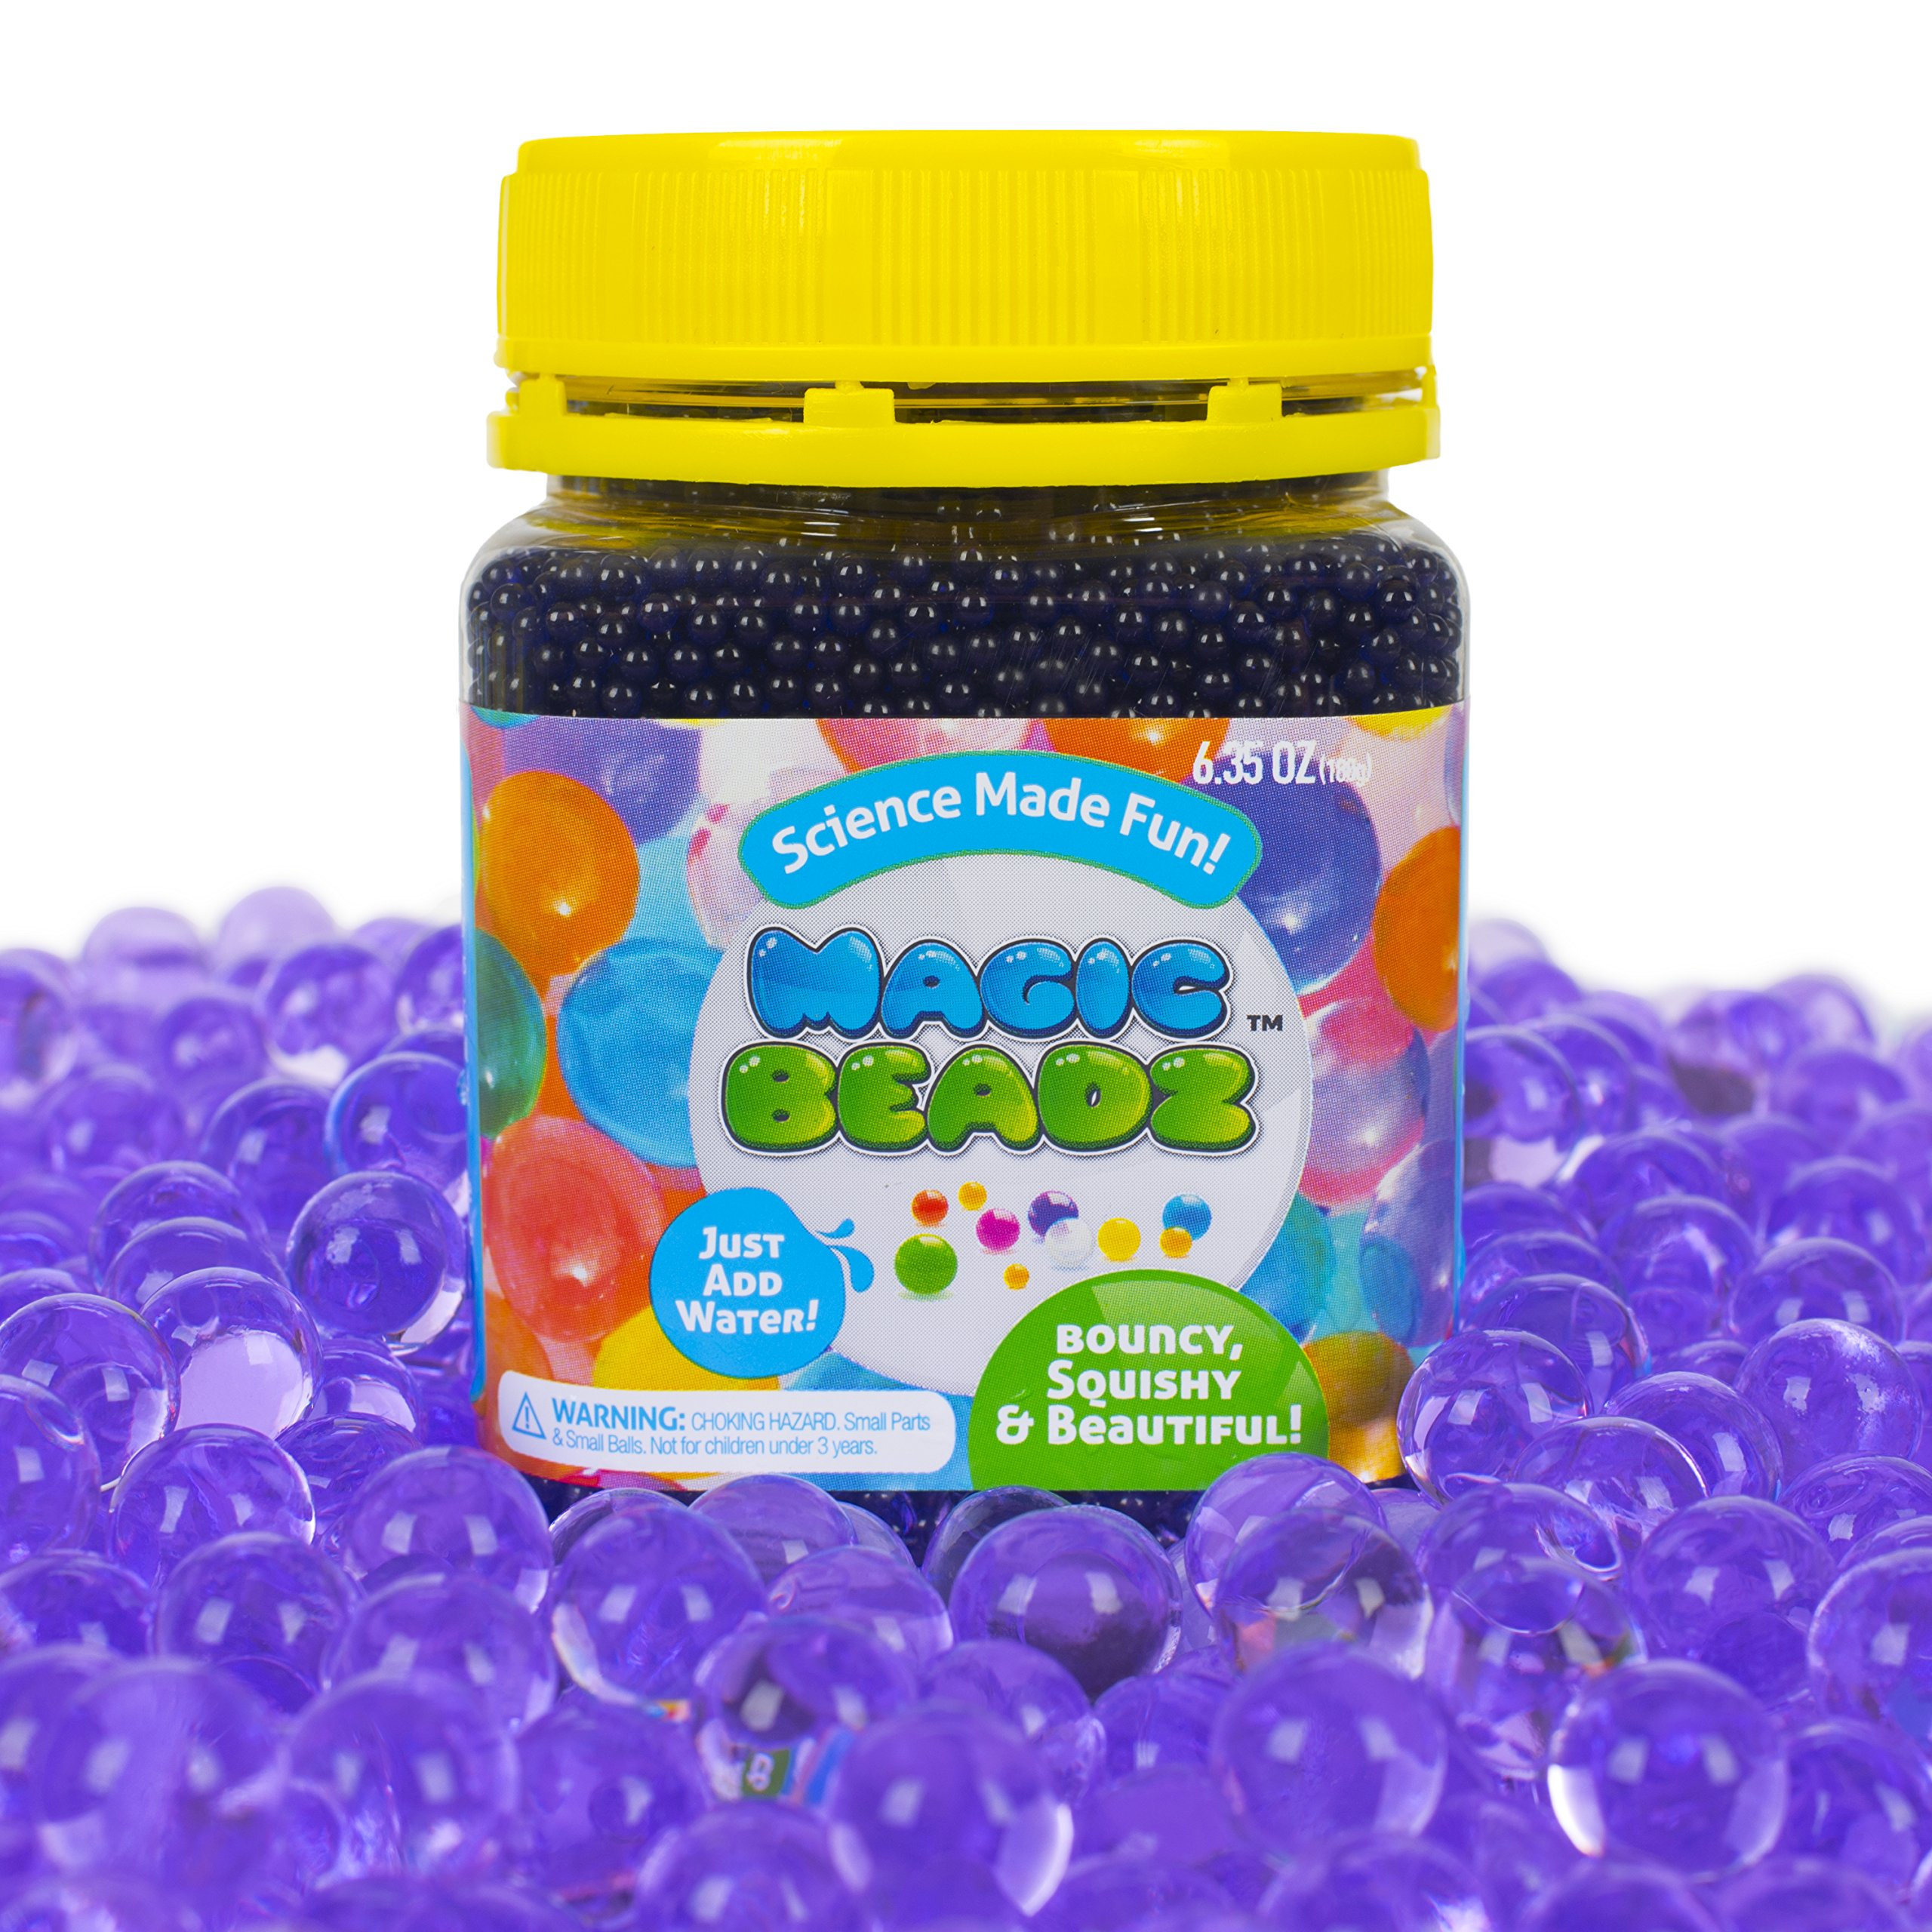 Magic Beadz Purple Gel Water Beads - Transparent Jelly Pearls - Vase Filler - Wedding Centerpiece - Candles - Flower Arrangements - Over 20,000 Beads